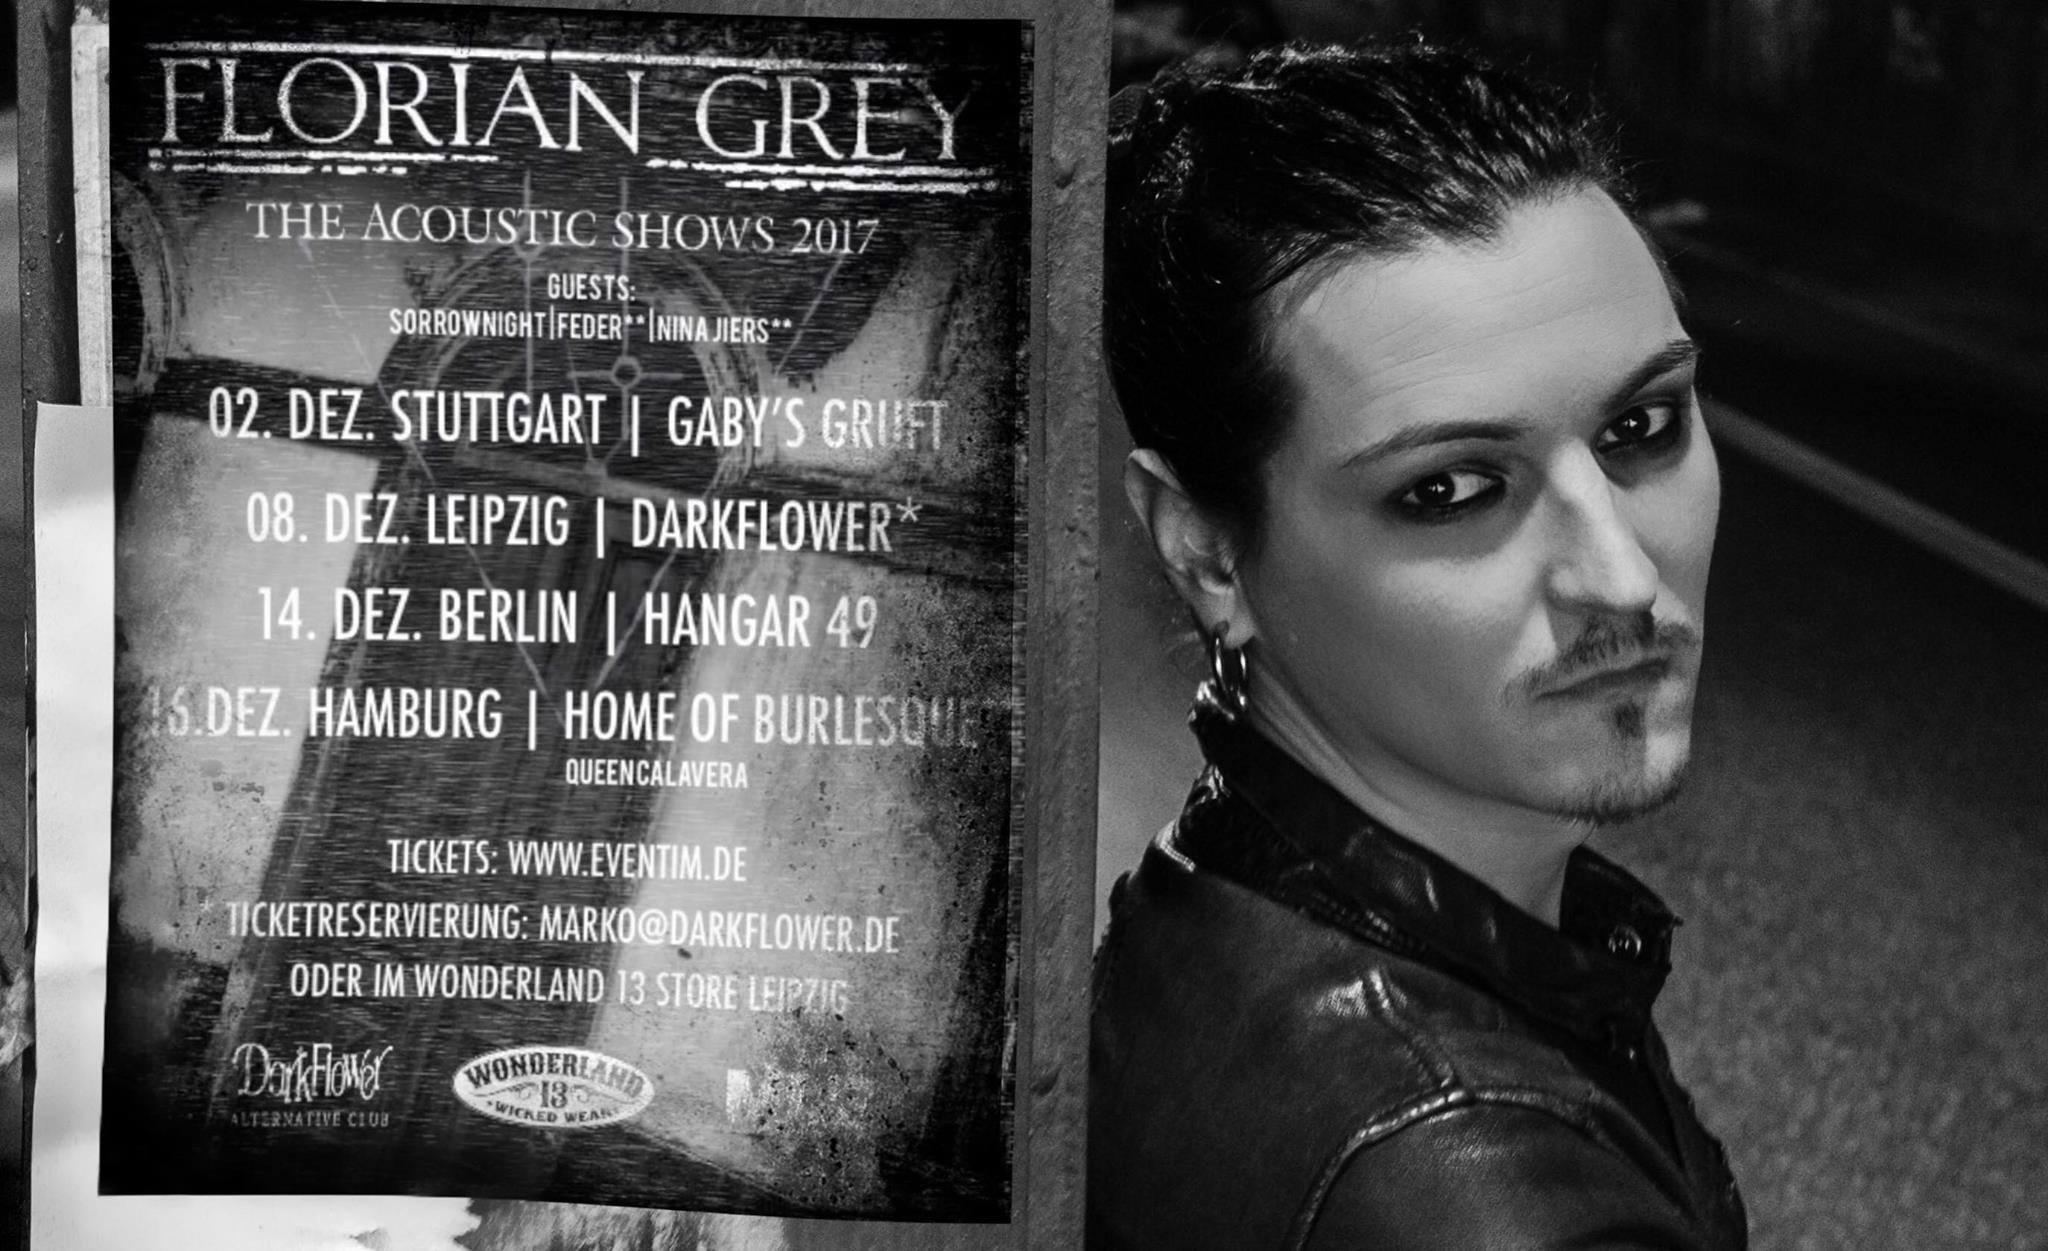 FLORIAN GRAY THE ACOUSTIC SHOWS 2017